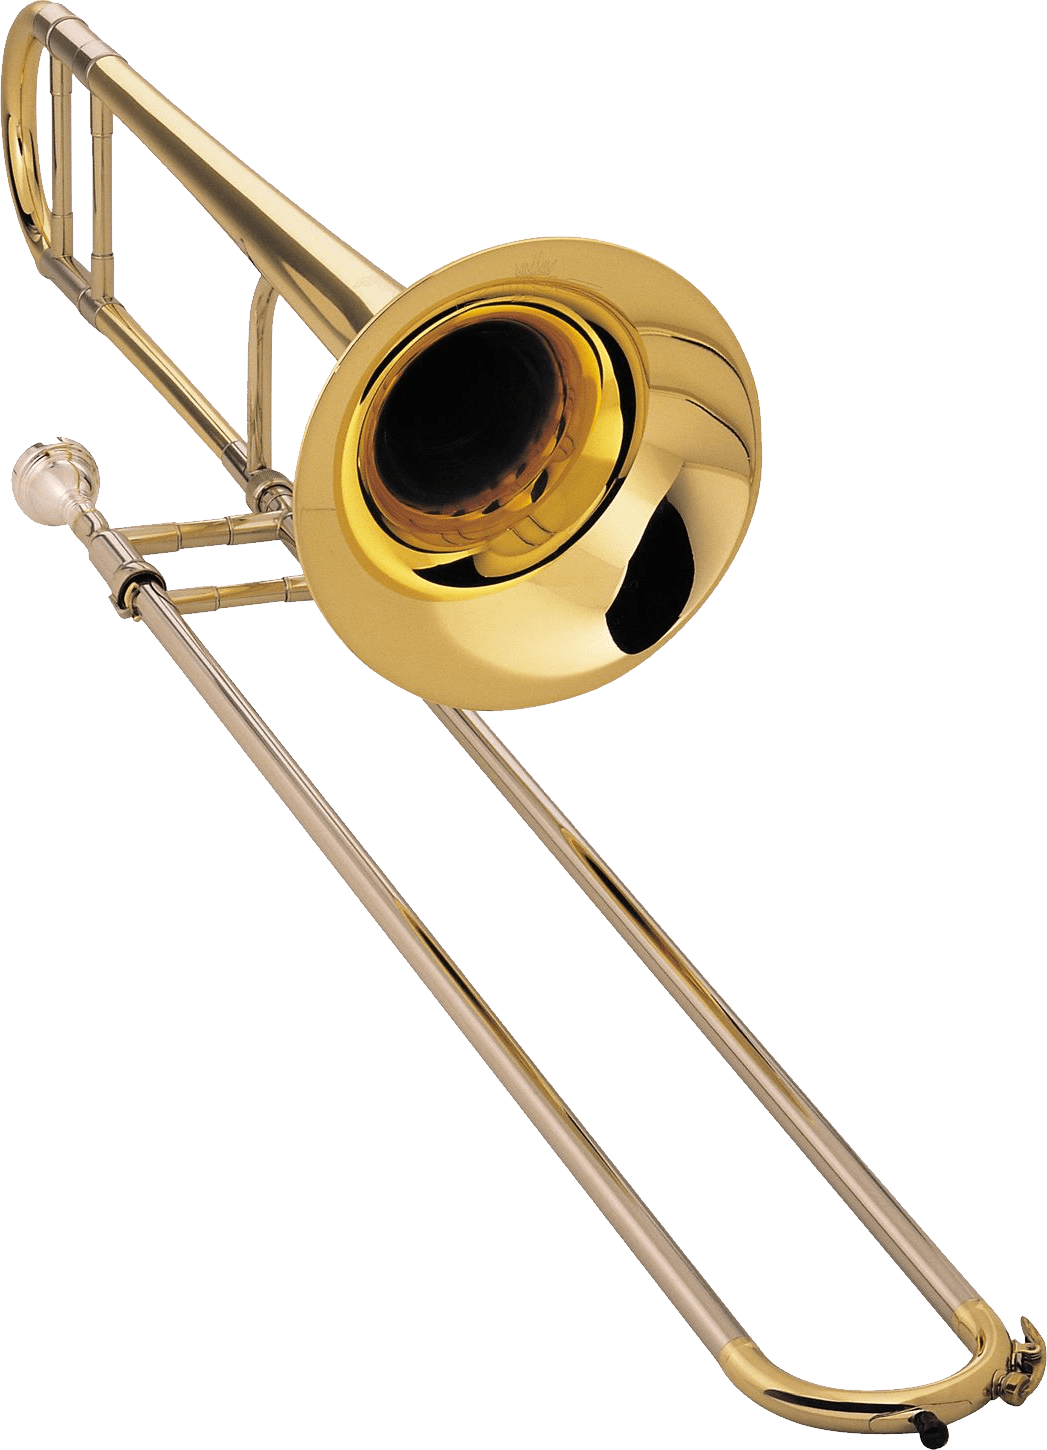 Trombone transparent PNG.